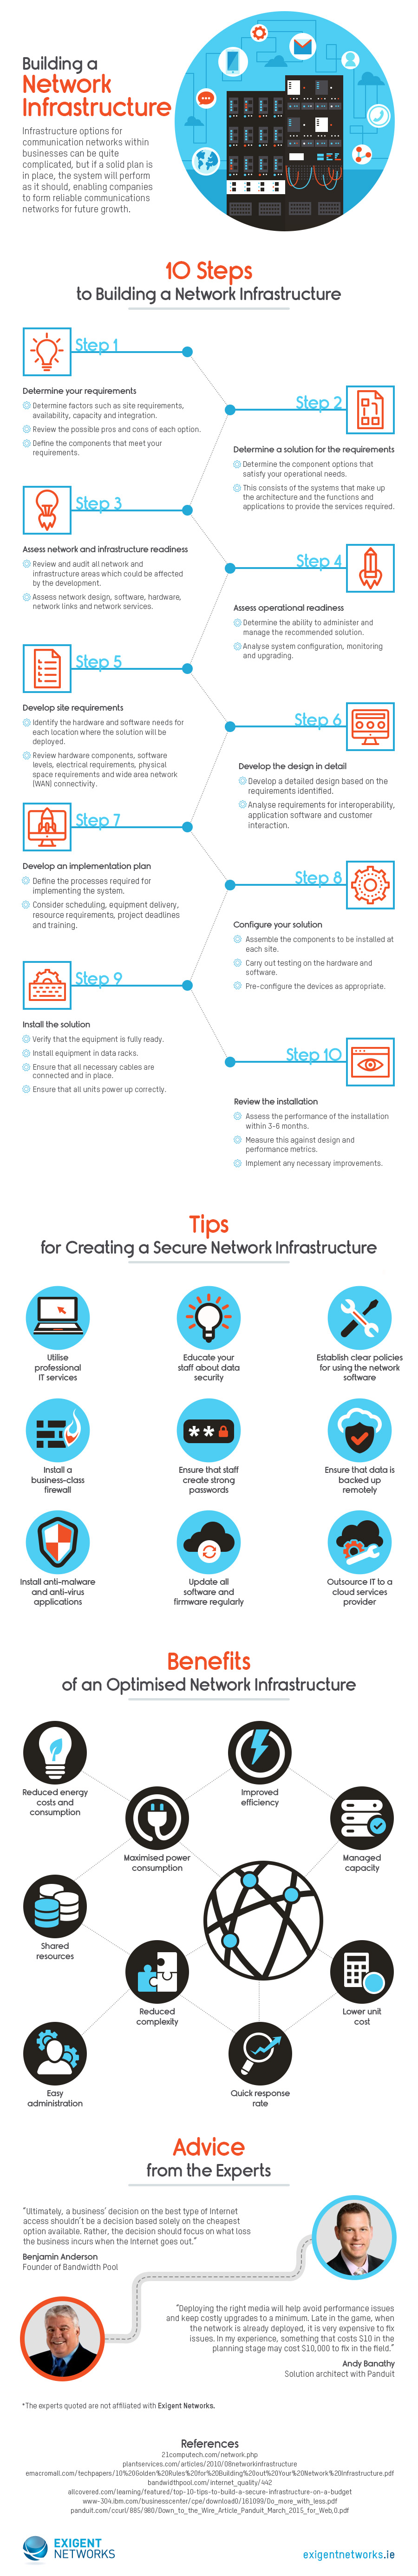 Building a Network Infrastructure – Infographic - Image 1